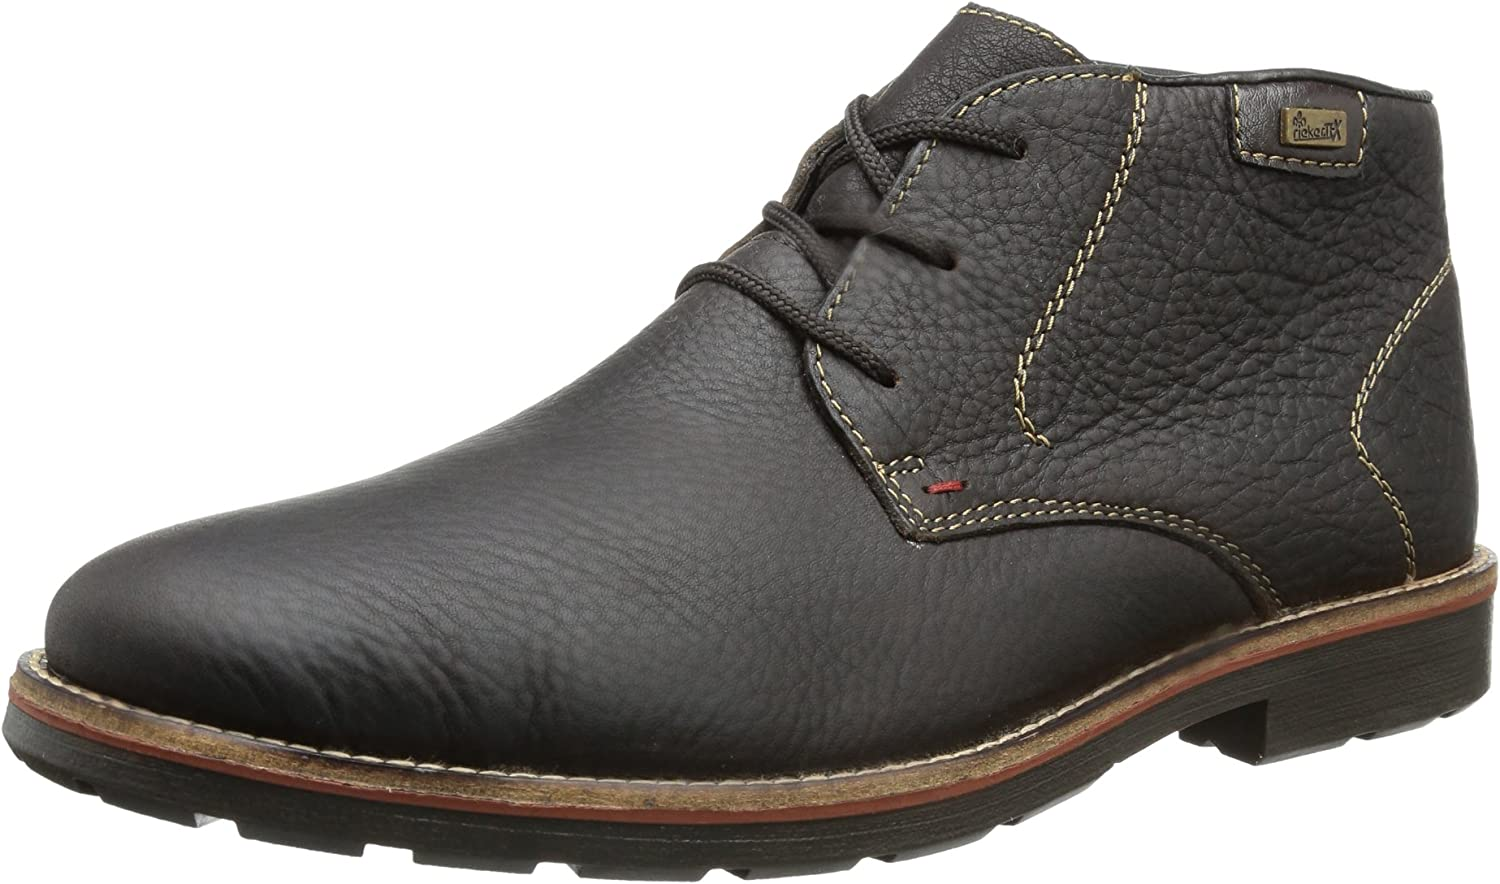 Rieker Men's 35310 Ankle Boots